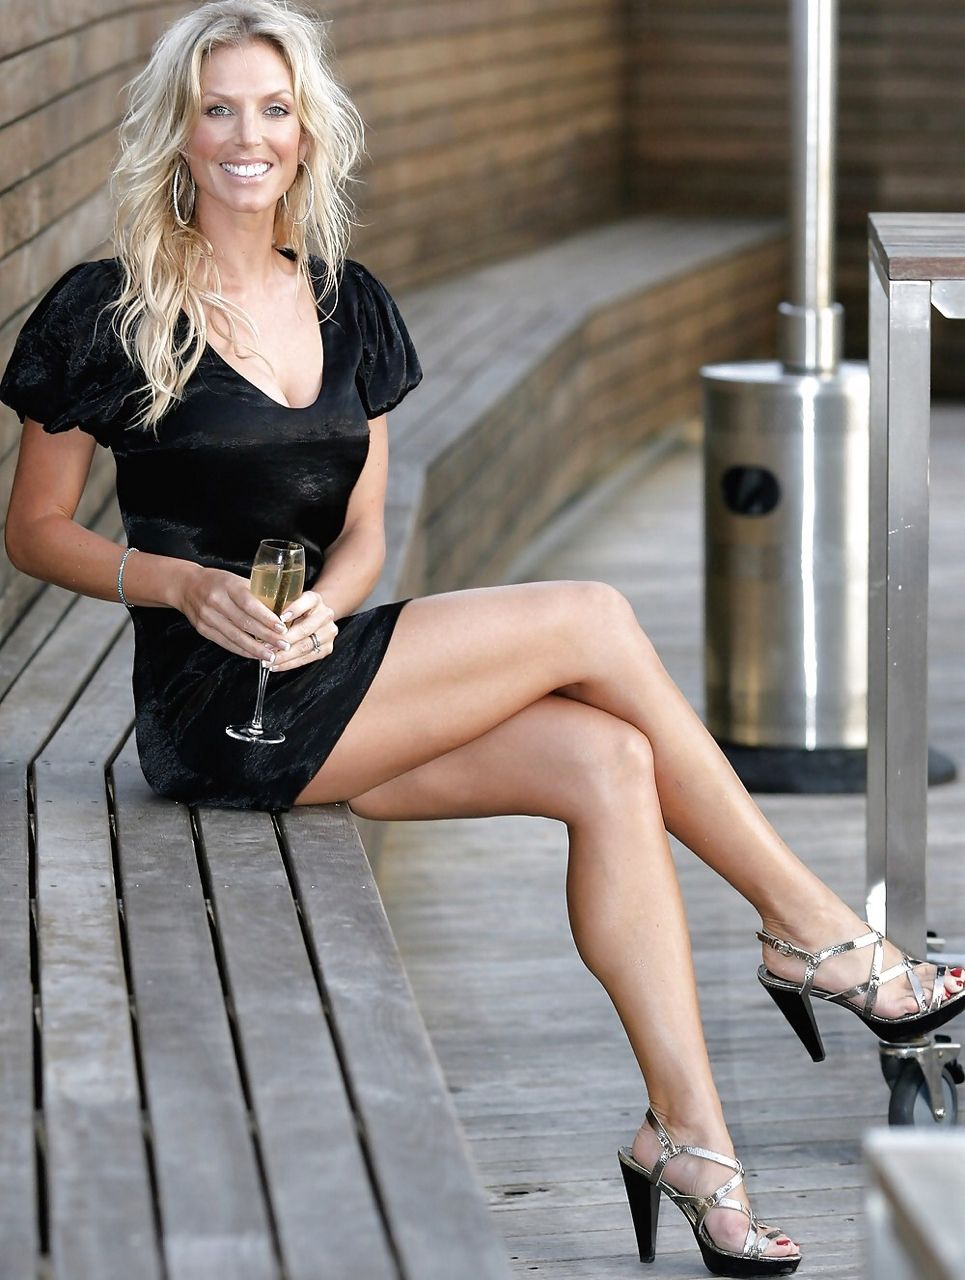 Mature with great legs